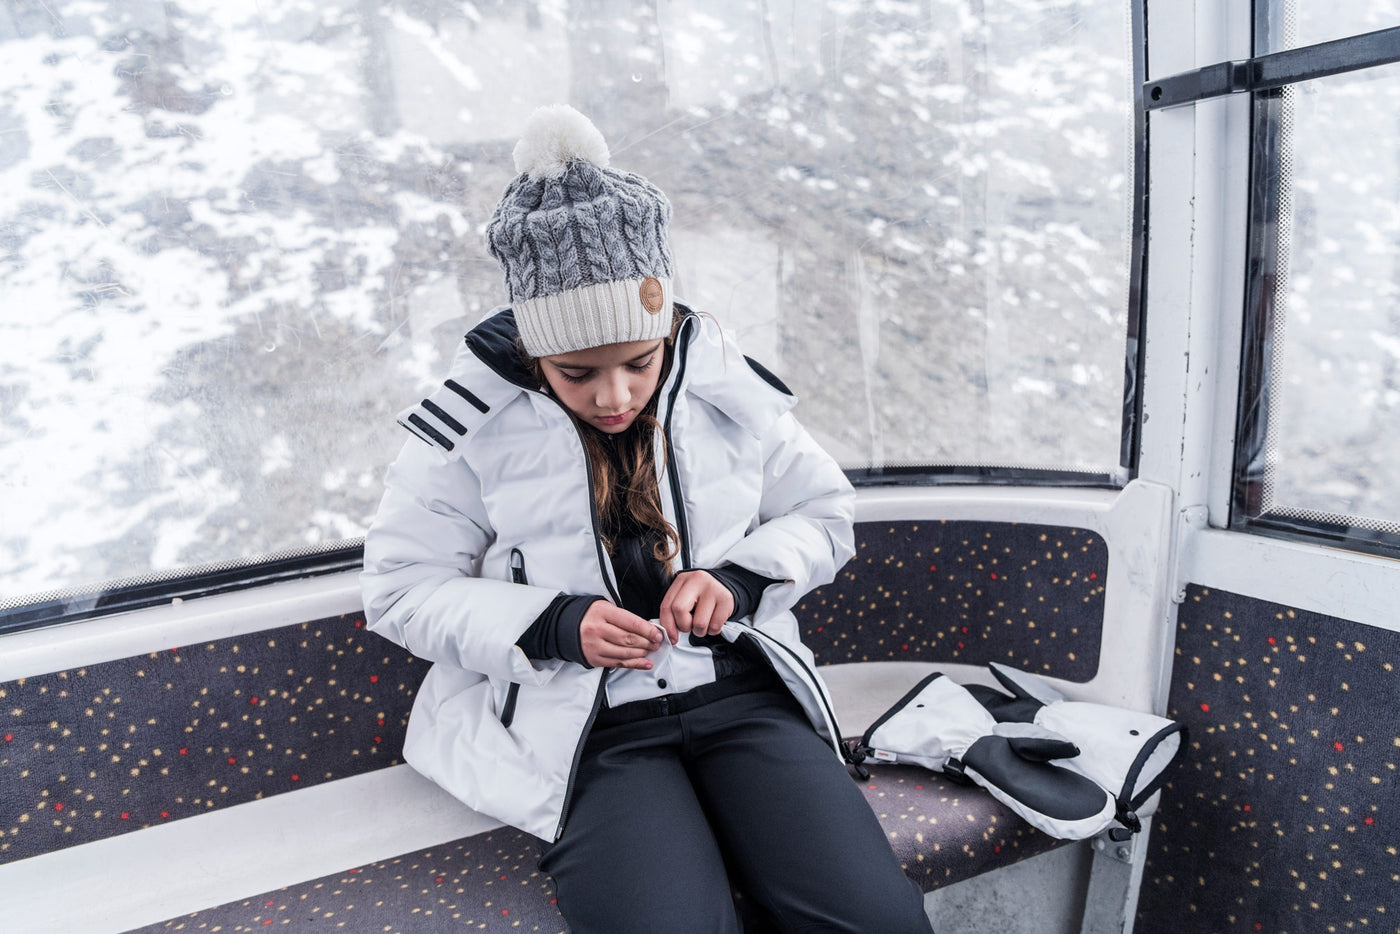 Girl in ski jacket zipping up her midlayer jacket in a ski enclosed gondola with gloves alongside